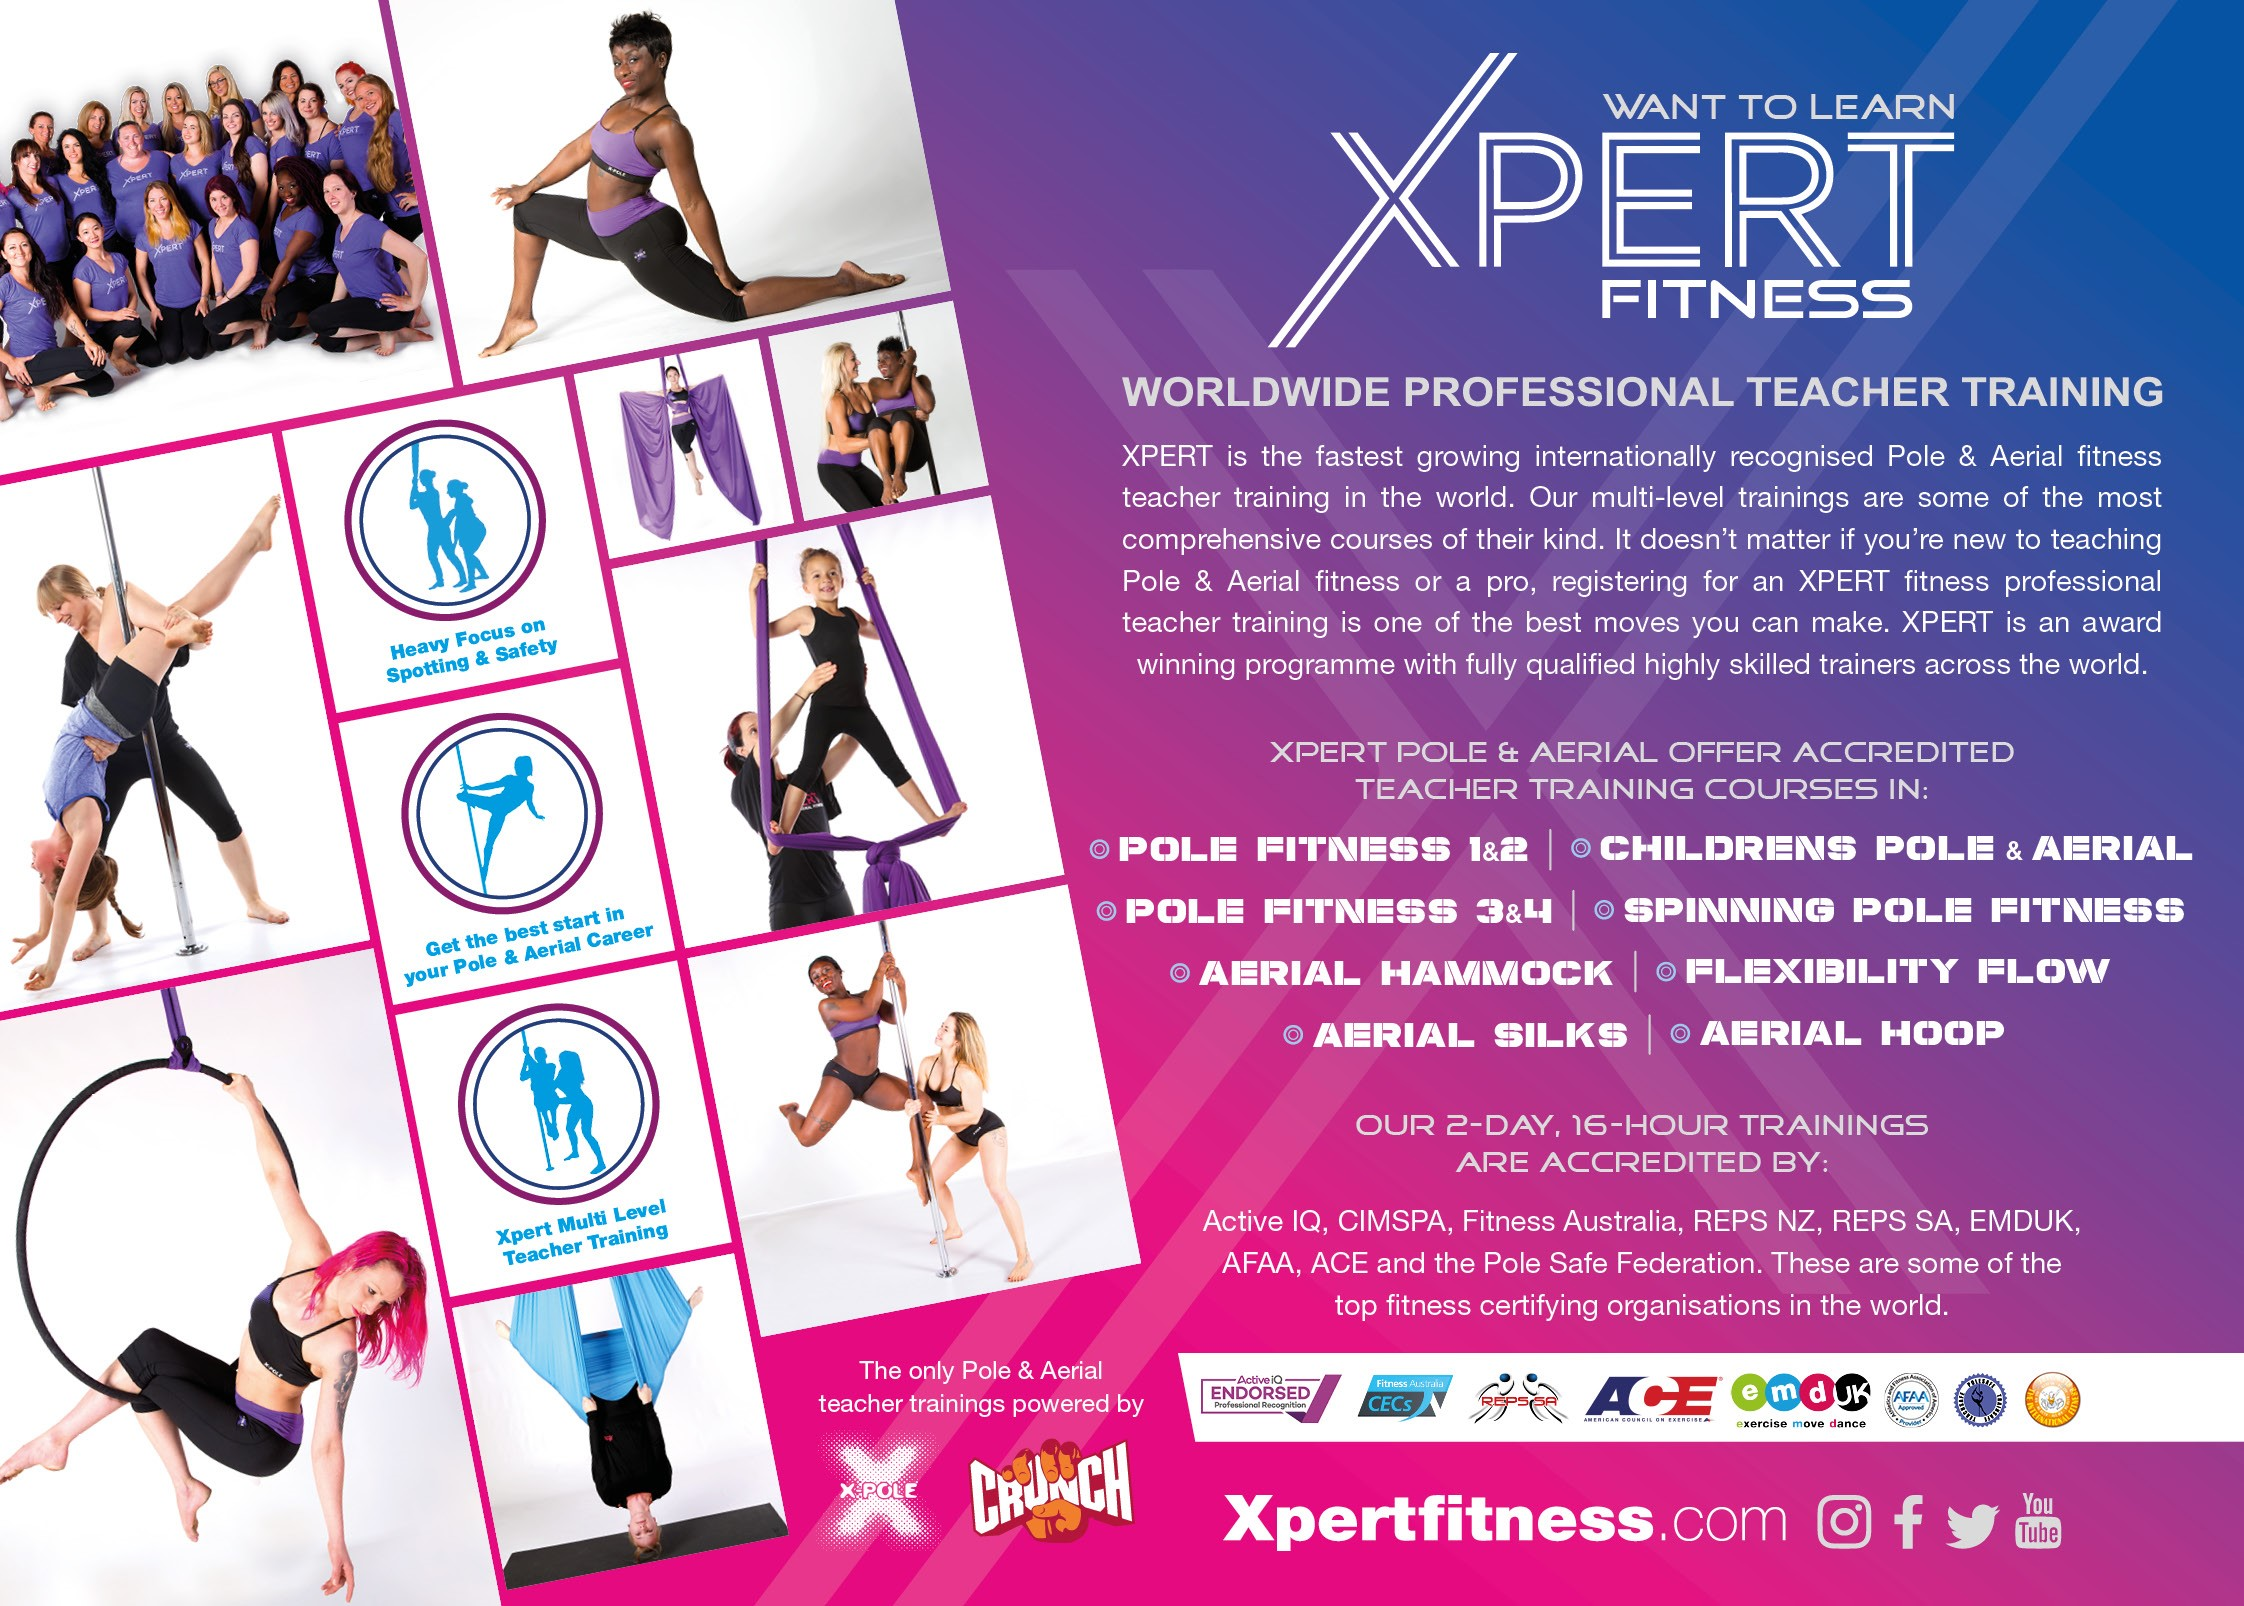 Get Certified through XPERT! - All competitors receive 10% off of an XPERT certification for pole, hoop, or flexibility. Please email amy@xpoleus.com to get the discount set up.Click here to see dates and locations! Offer applies to certifications at the XPOLE Development Centre USA in North Hollywood, CA.